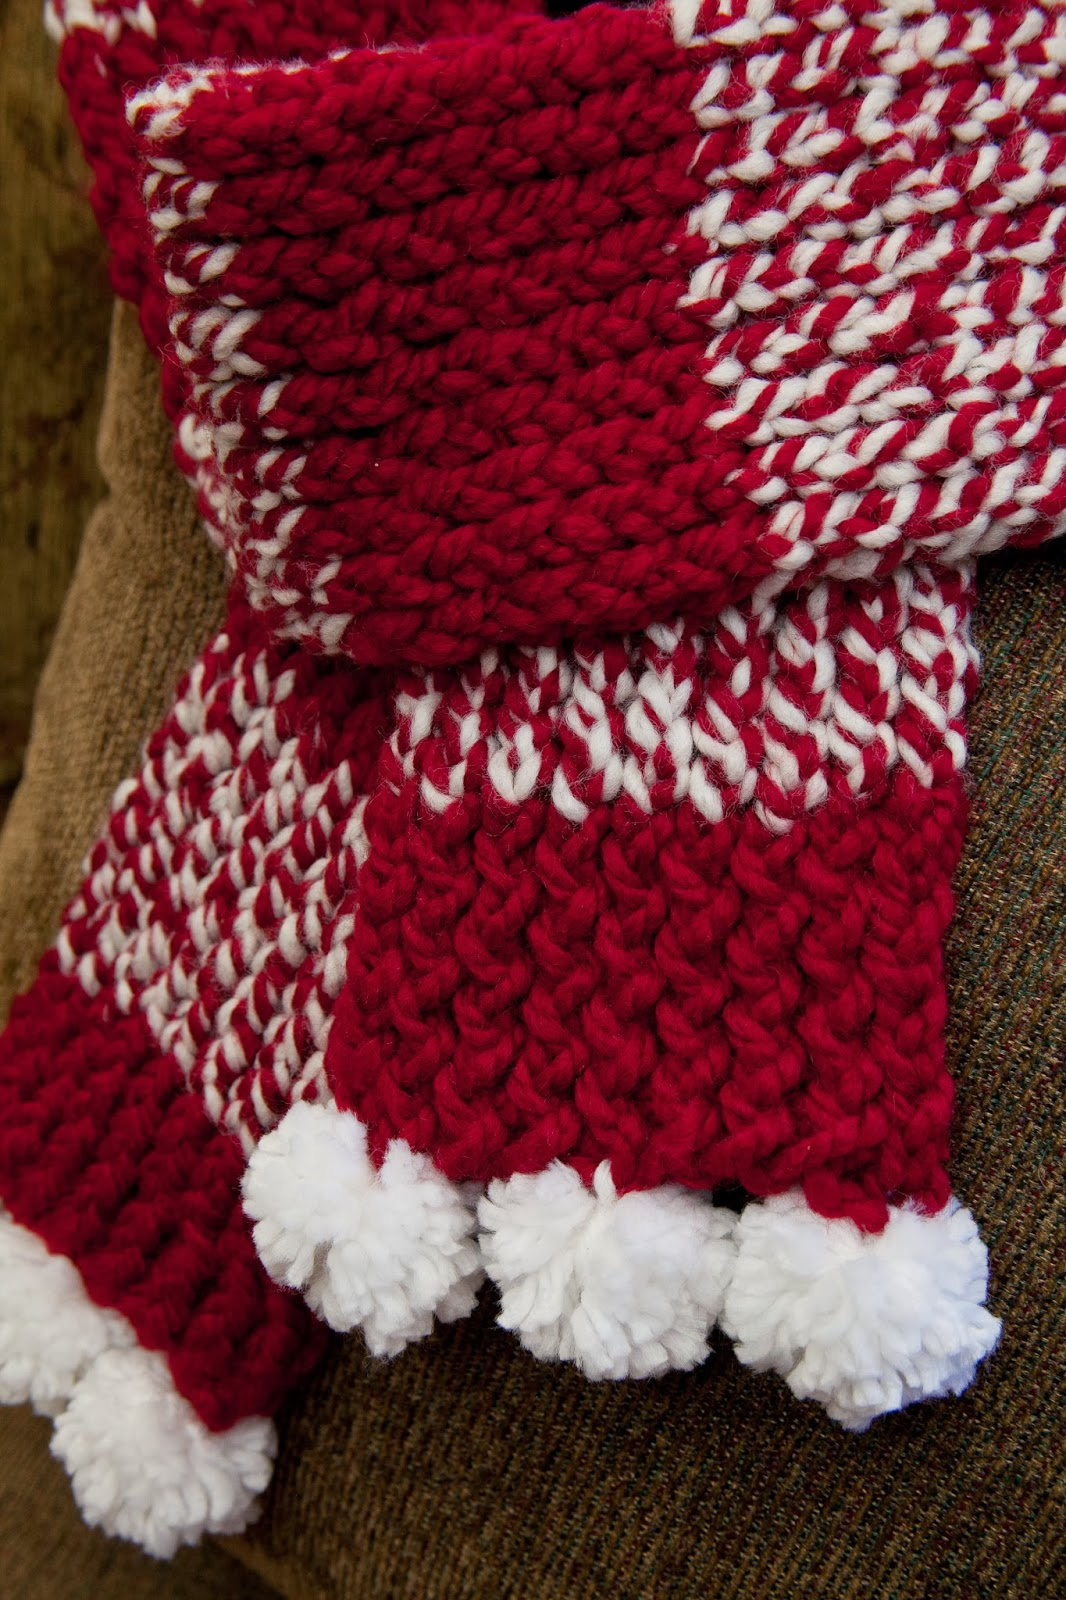 Knitting Loom Scarf : Loom knit holiday scarf knitting by this moment is